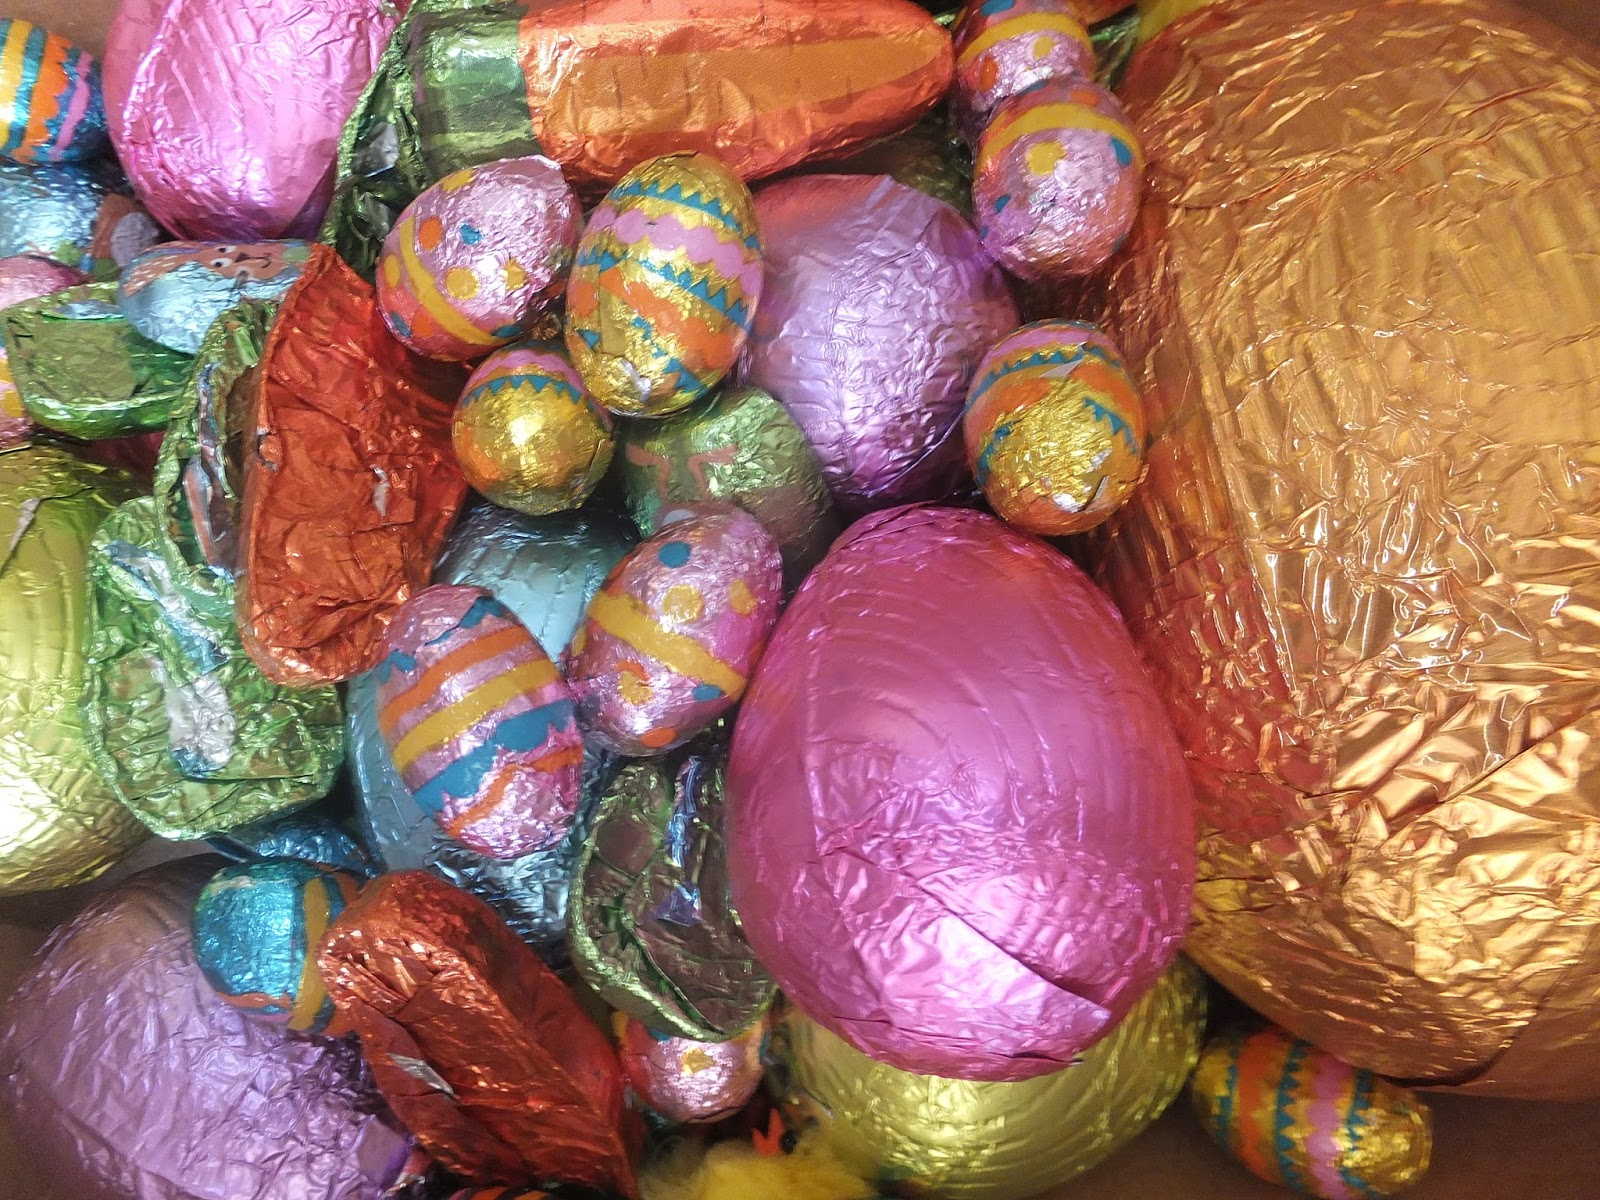 Our beach easter egg hunt with tesco tescoeaster are you in the mood for easter yet got all your eggs planned the grand hunt started baking no dont fret if you think the easter bunny might need a negle